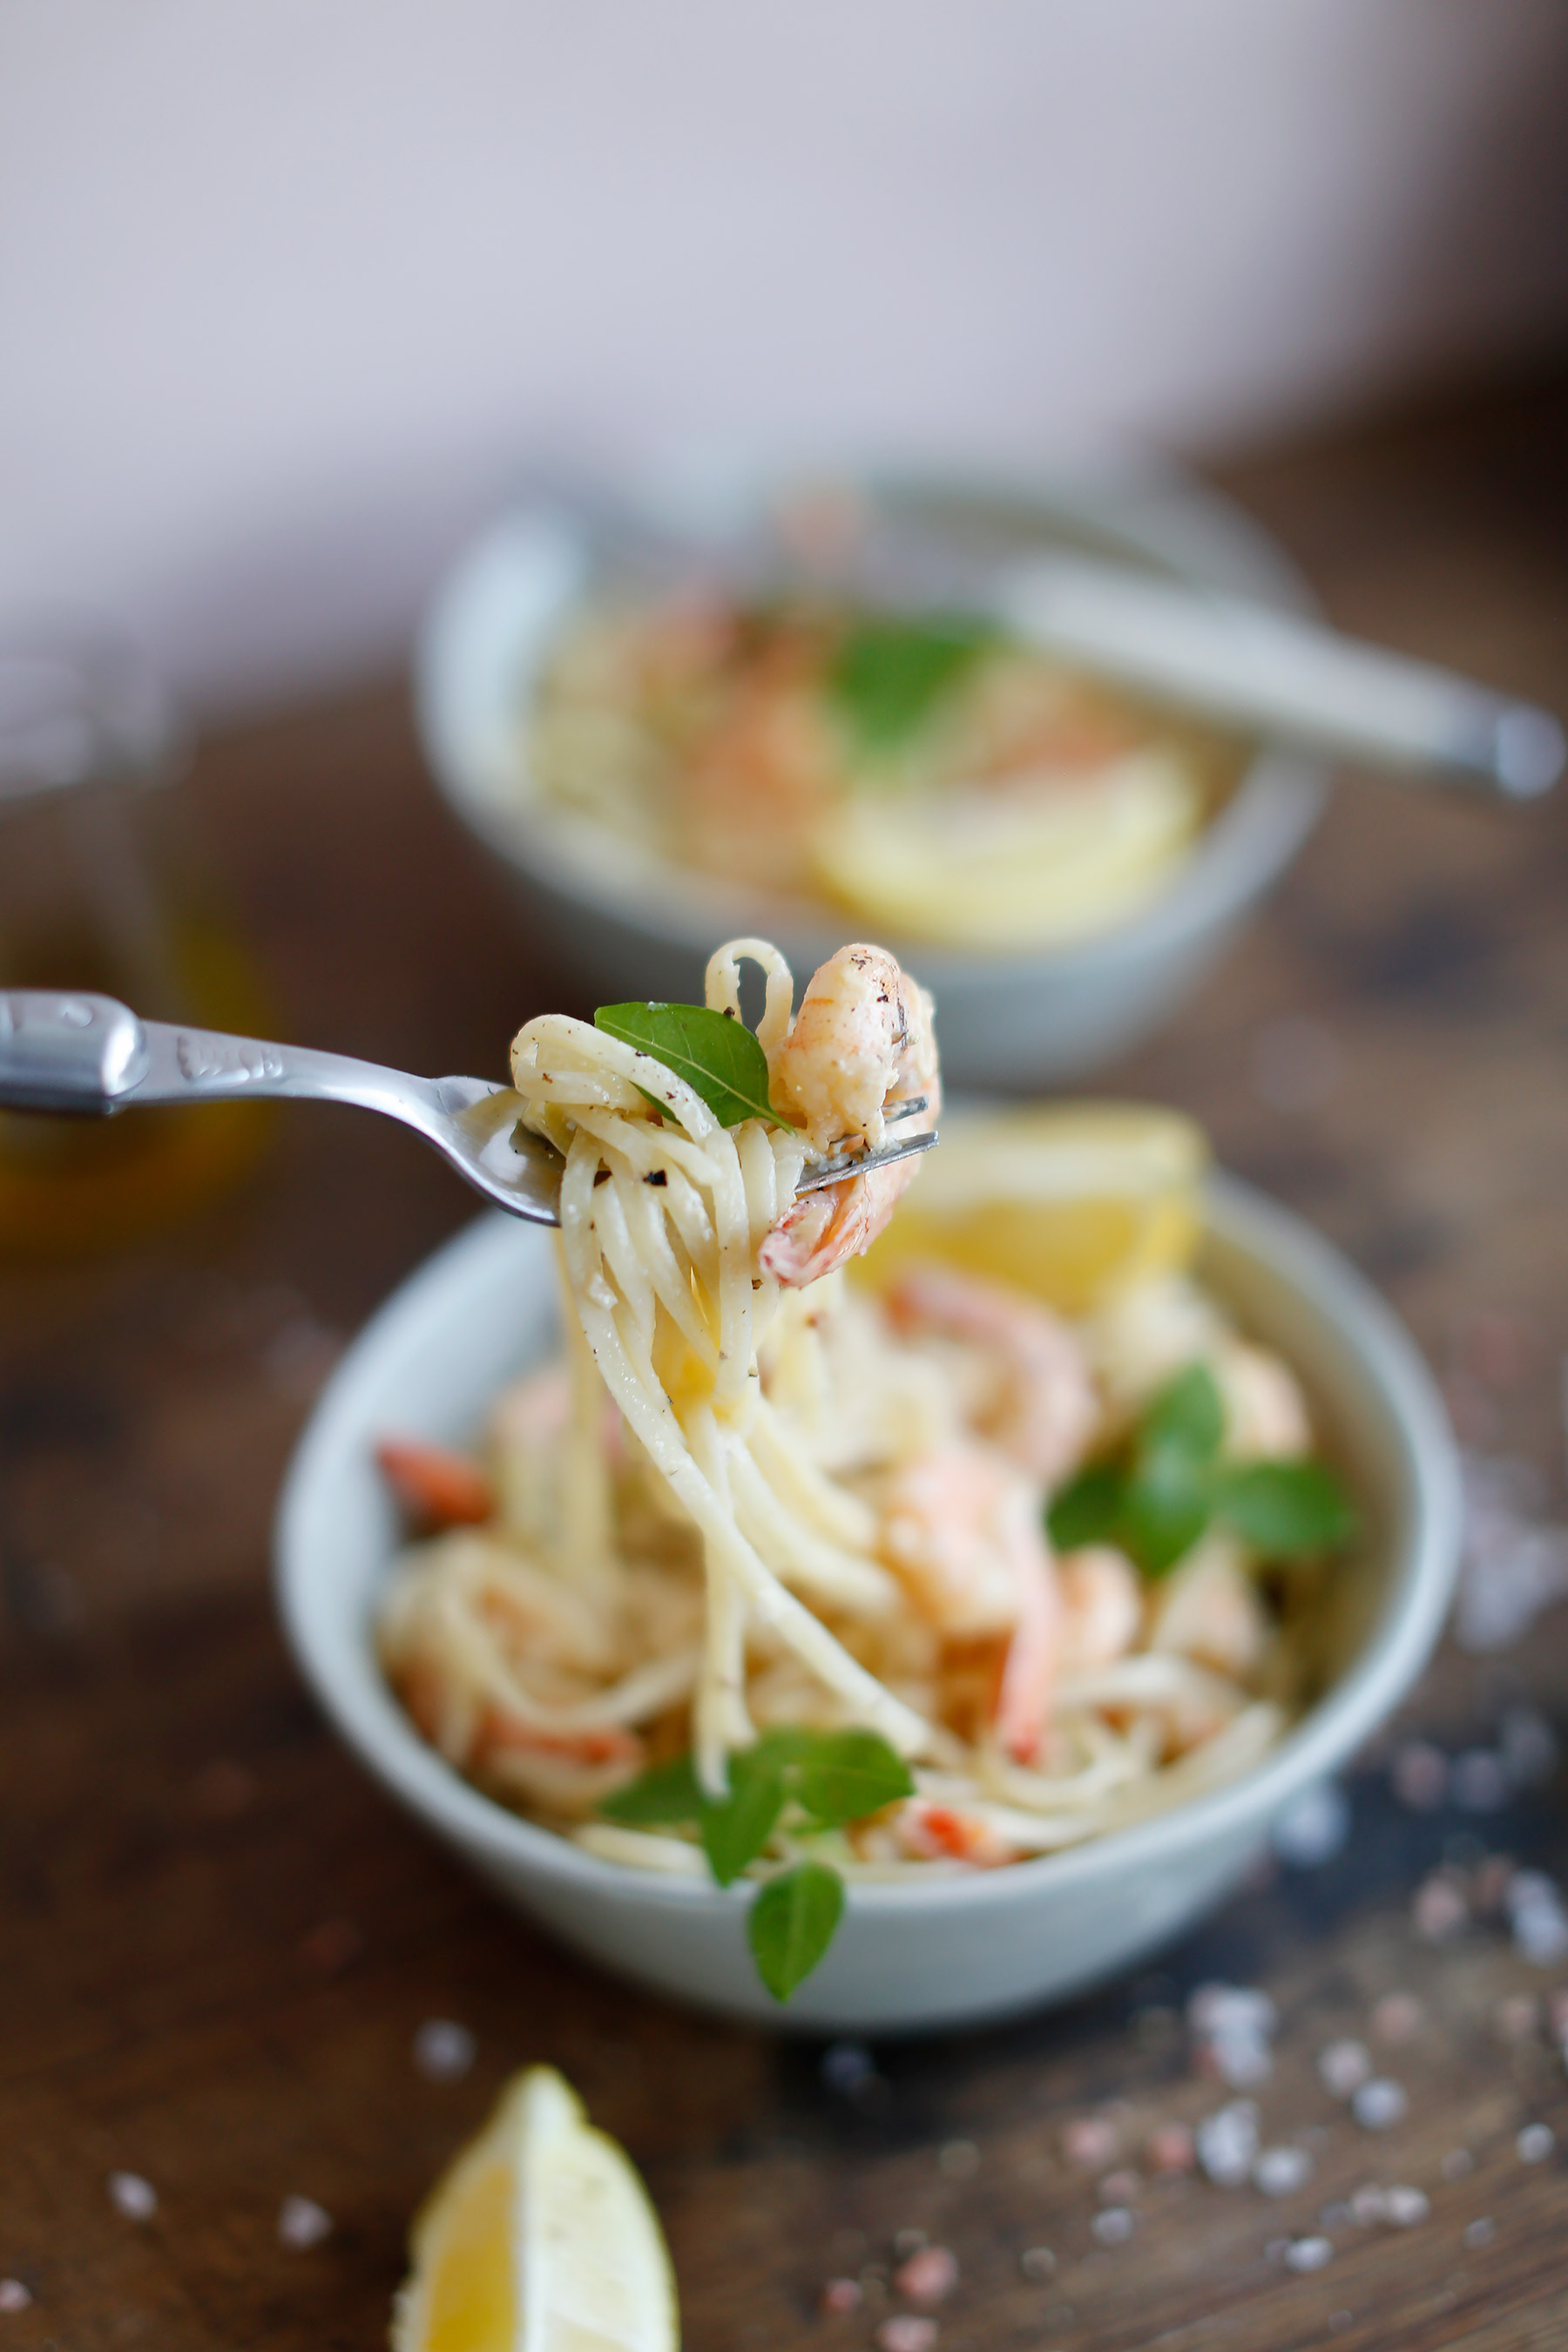 Lemon-Cream,-Prawn-and-Leek-Pasta-1